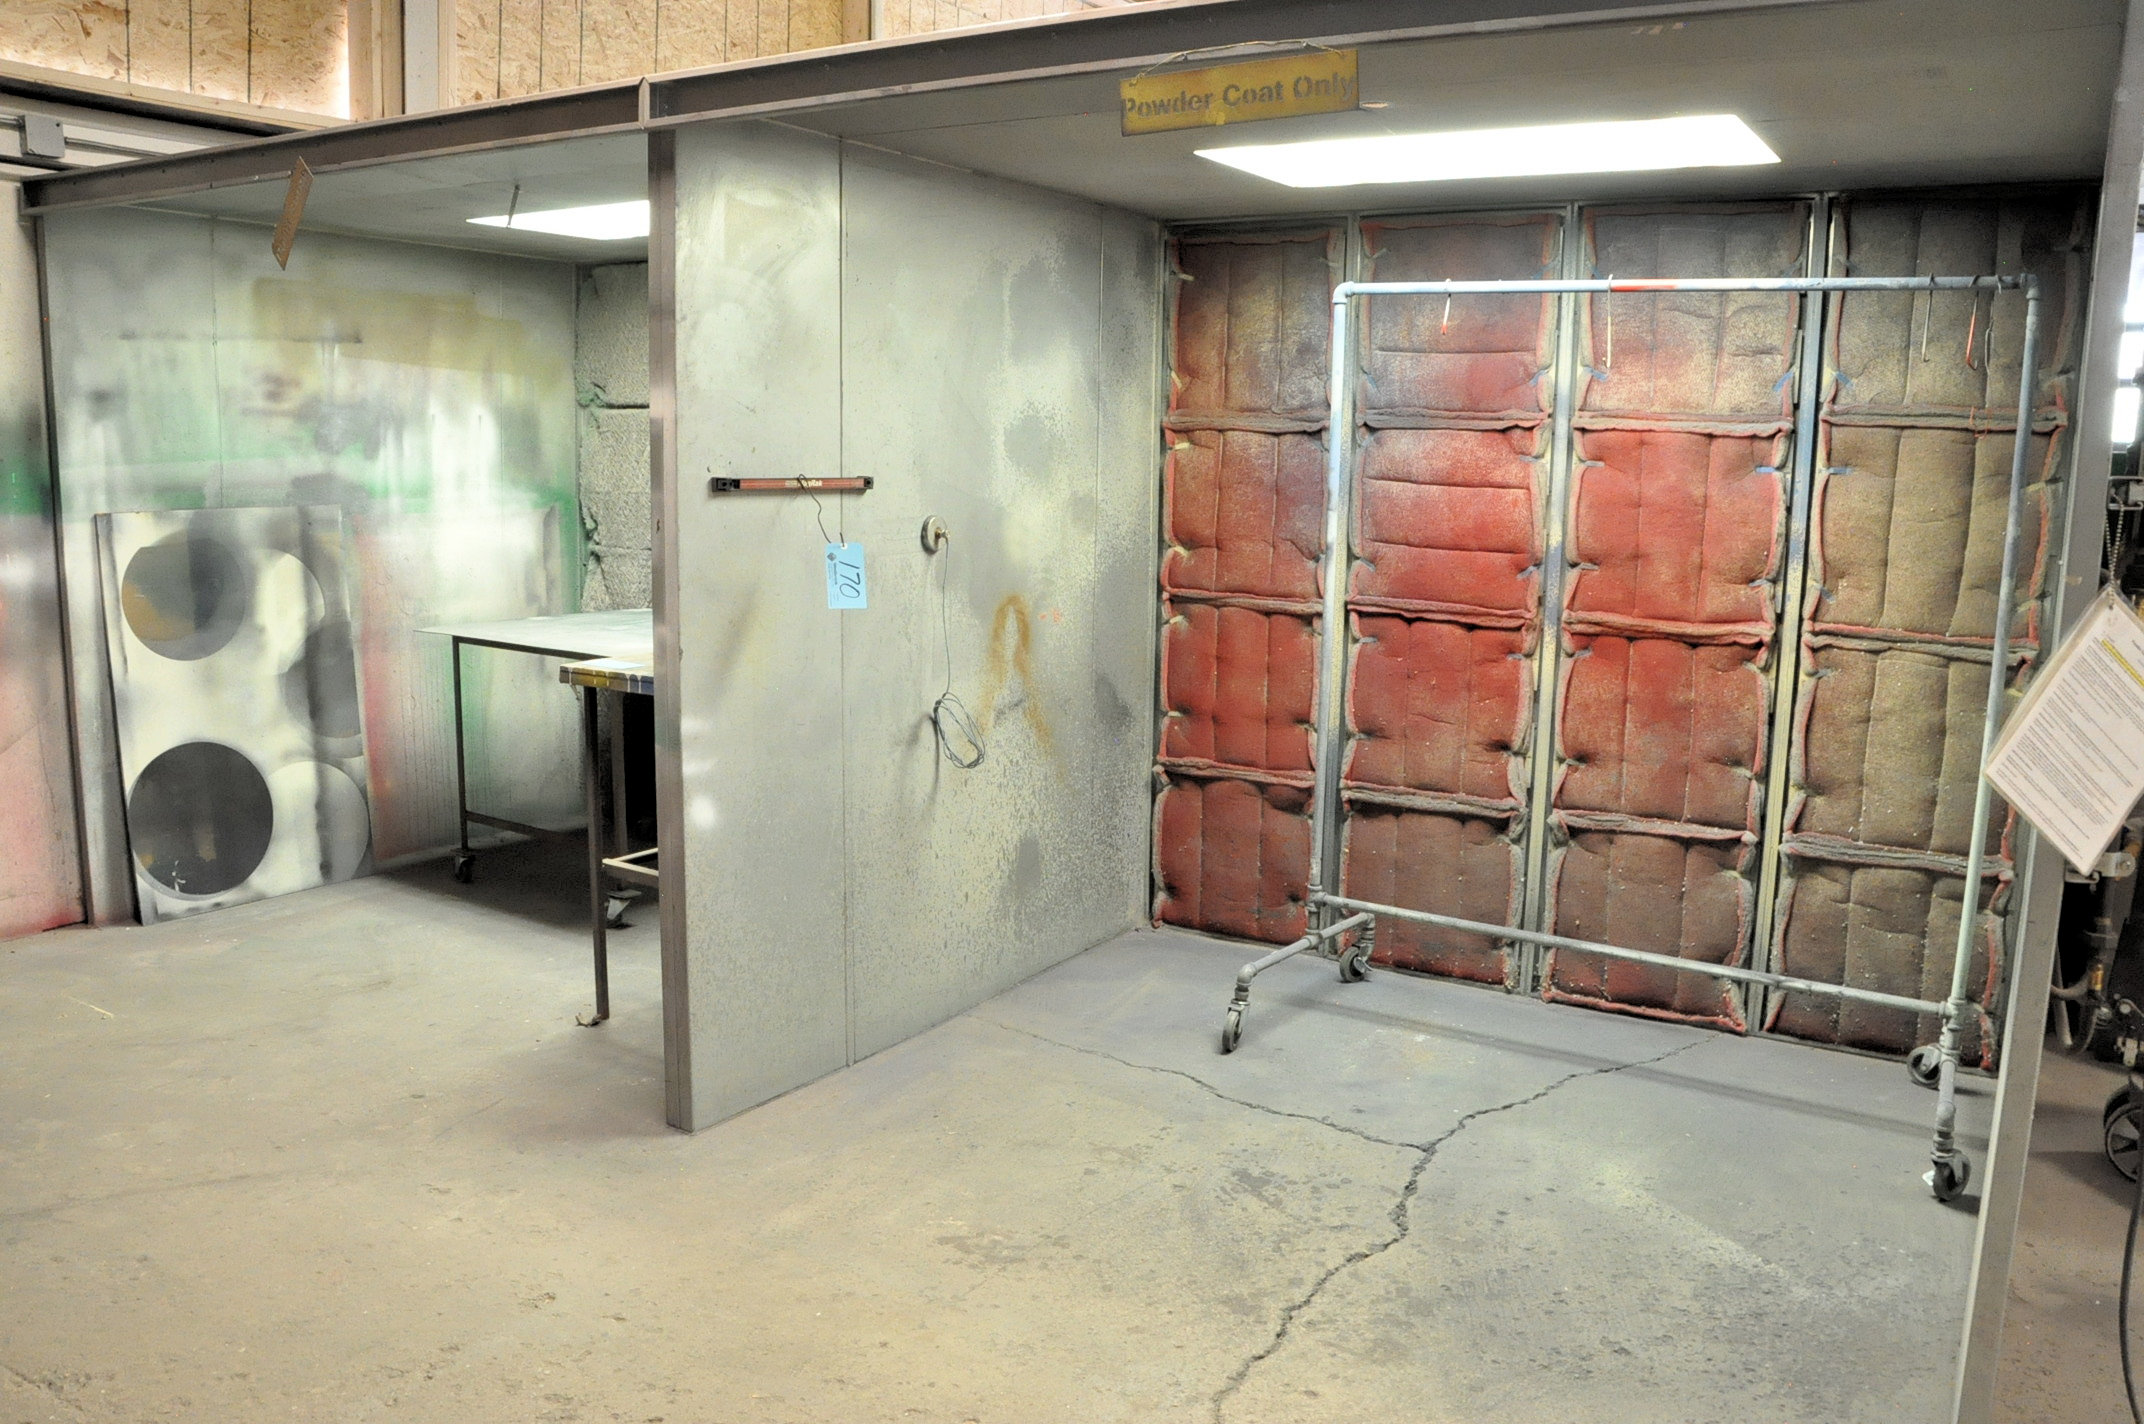 Eastwood Powder Coat Booth with Booth Mounted Filtered Exhaust Blower Air System, 8' x 7' x 6.5' - Image 2 of 3